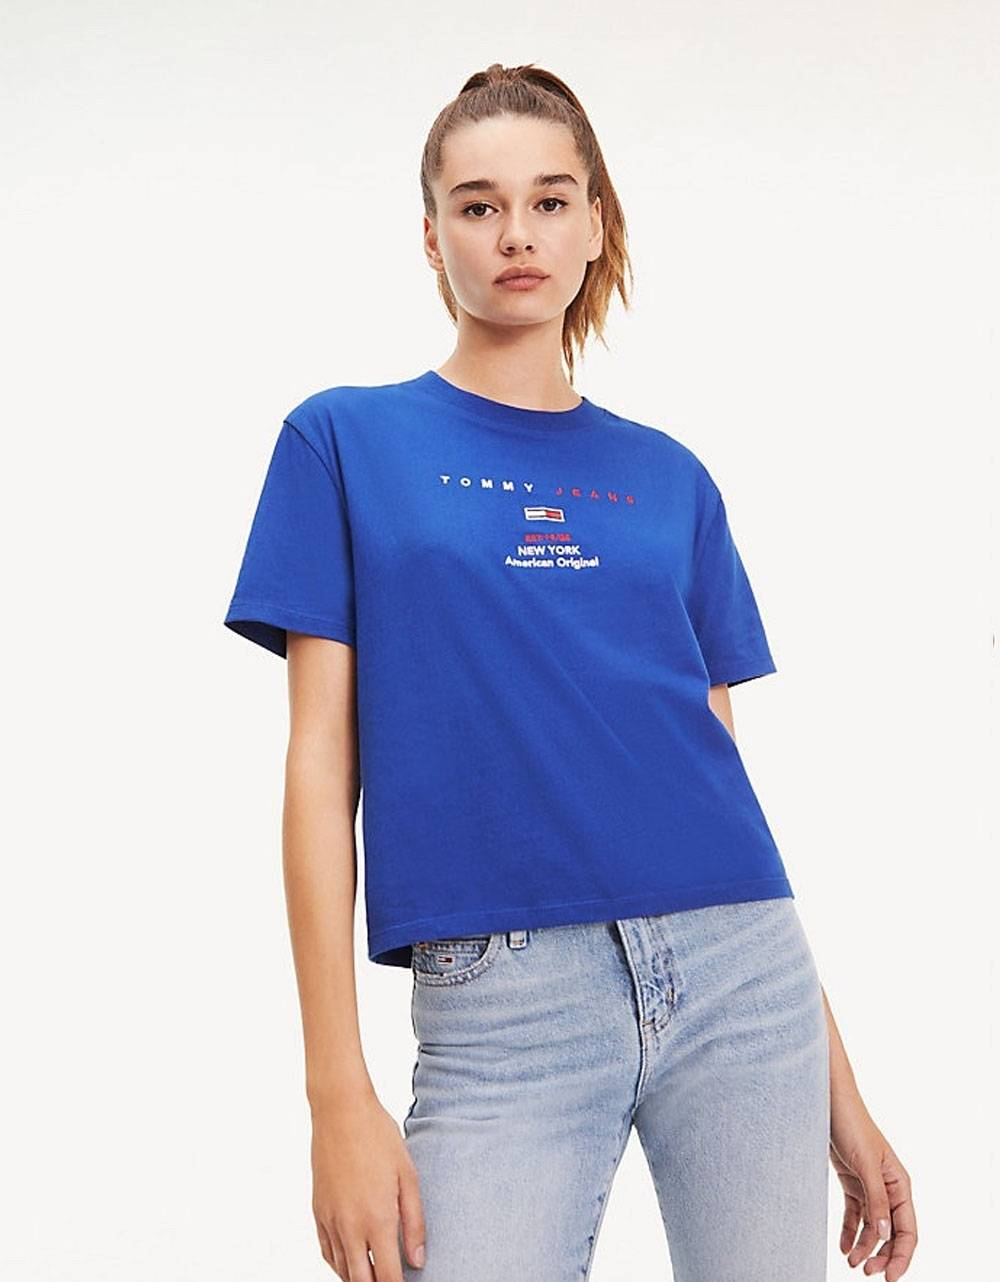 Tommy Jeans woman's small logo text tee - Mazarine blue Tommy Jeans T-shirt 36,89€